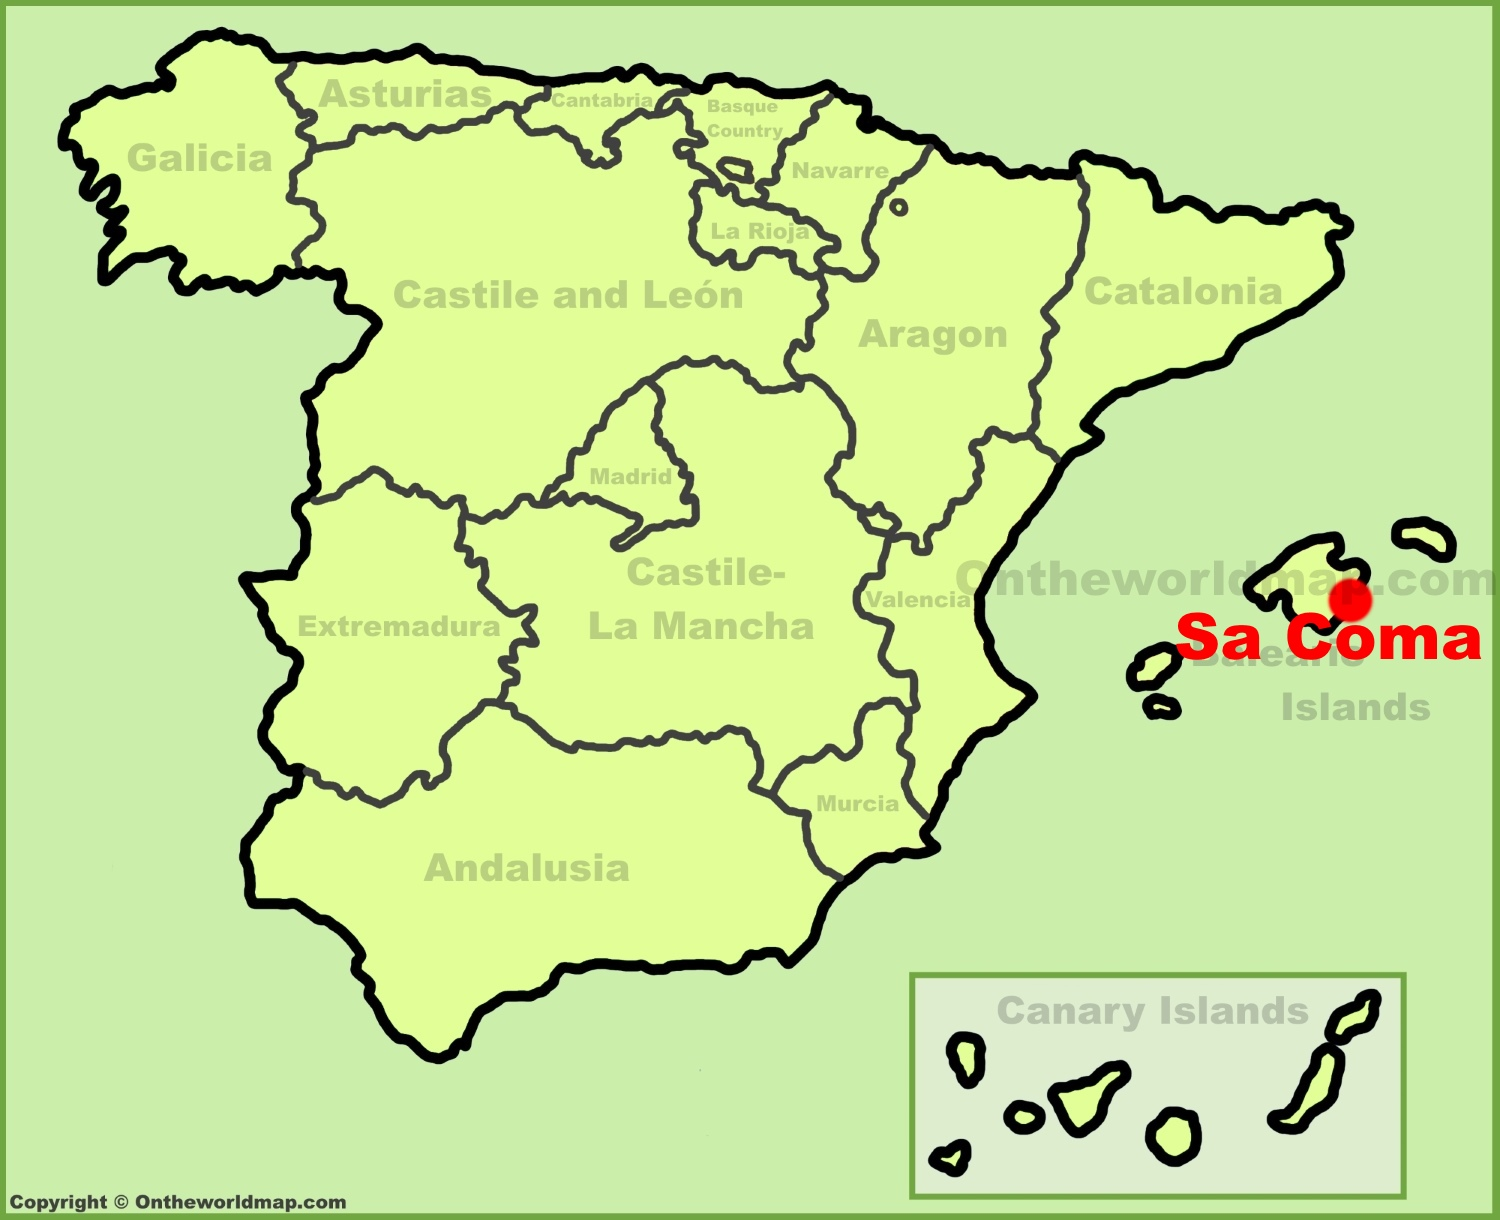 Sa Coma location on the Spain map